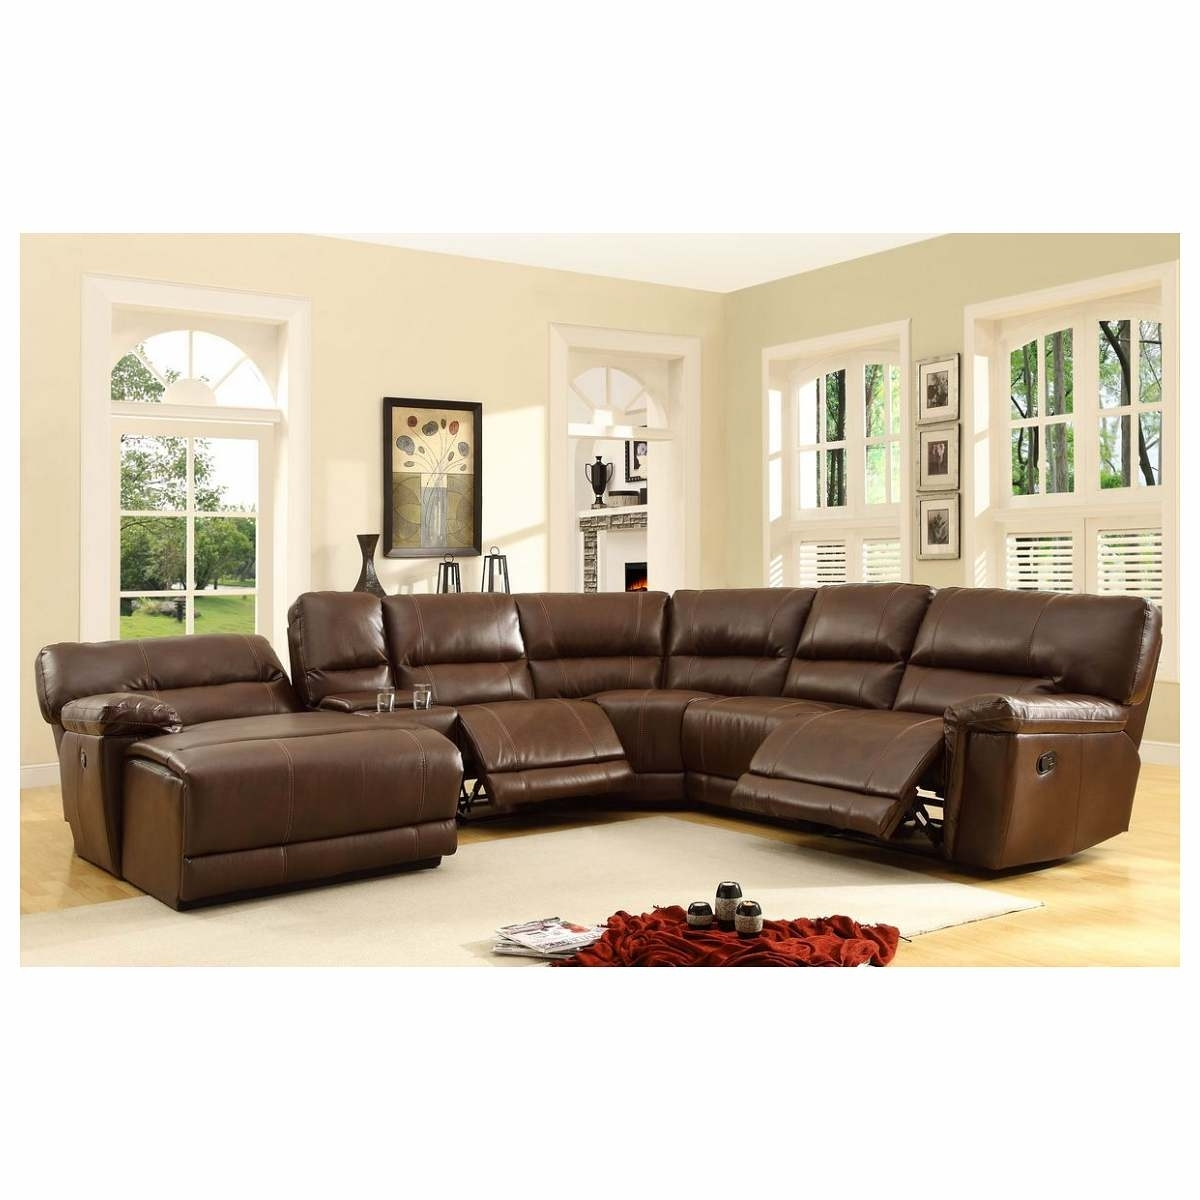 Newest 6 Pc Blythe Collection Brown Bonded Leather Match Upholstered Regarding Eau Claire Wi Sectional Sofas (View 9 of 15)